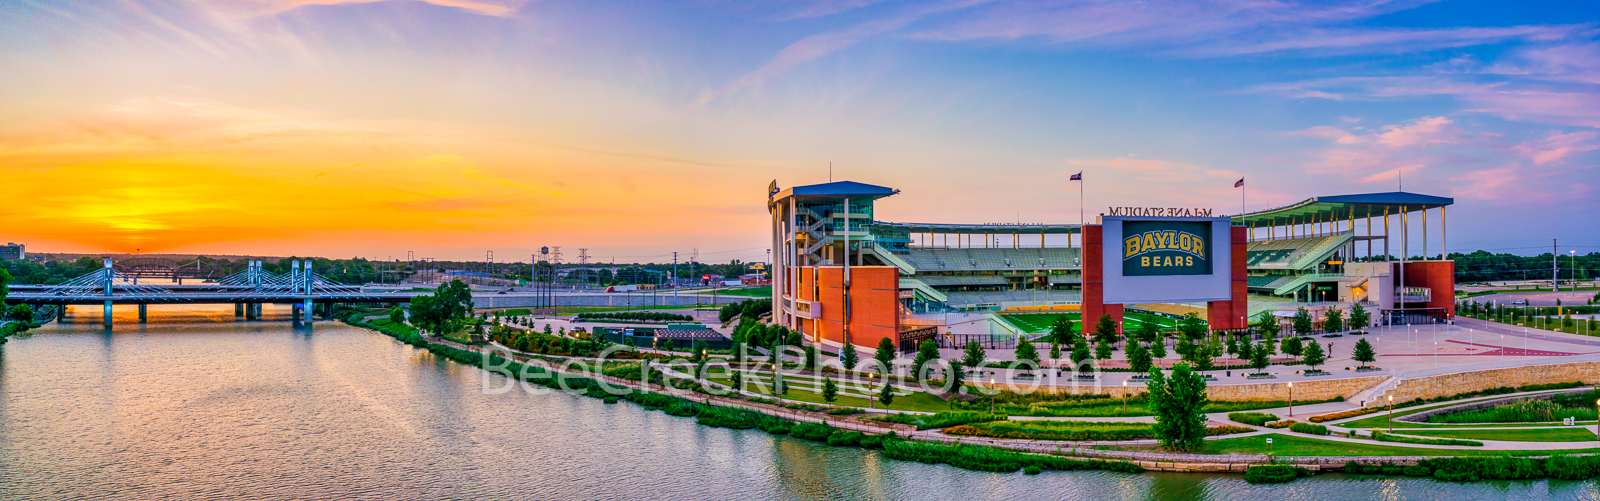 Waco, sunset, aerial, Baylor, McLane Stadium, Baylor University, dusk, blue hour, Baylor Bears, stadium , University of Baylor, school, Brazos river, panorama, pano, drone, campus, stay bridge, colore